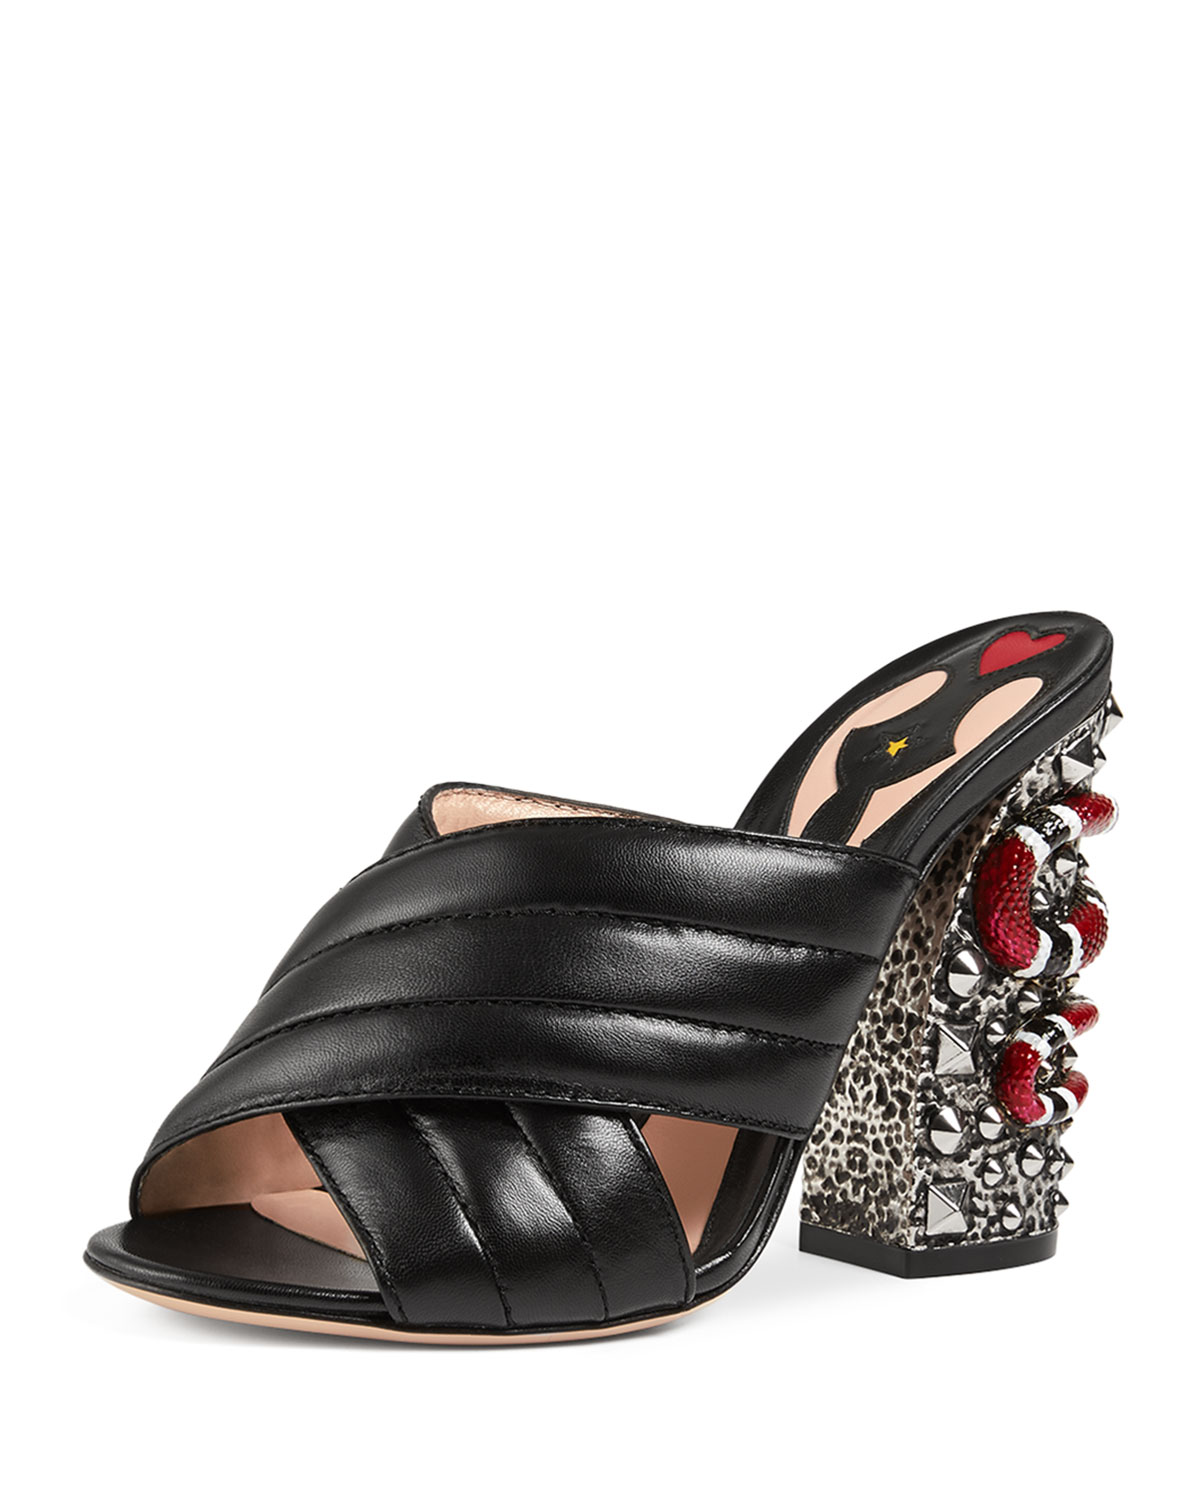 1964f9a6fb7 Gucci Webby Quilted Leather Snake-Heel Mule Sandal